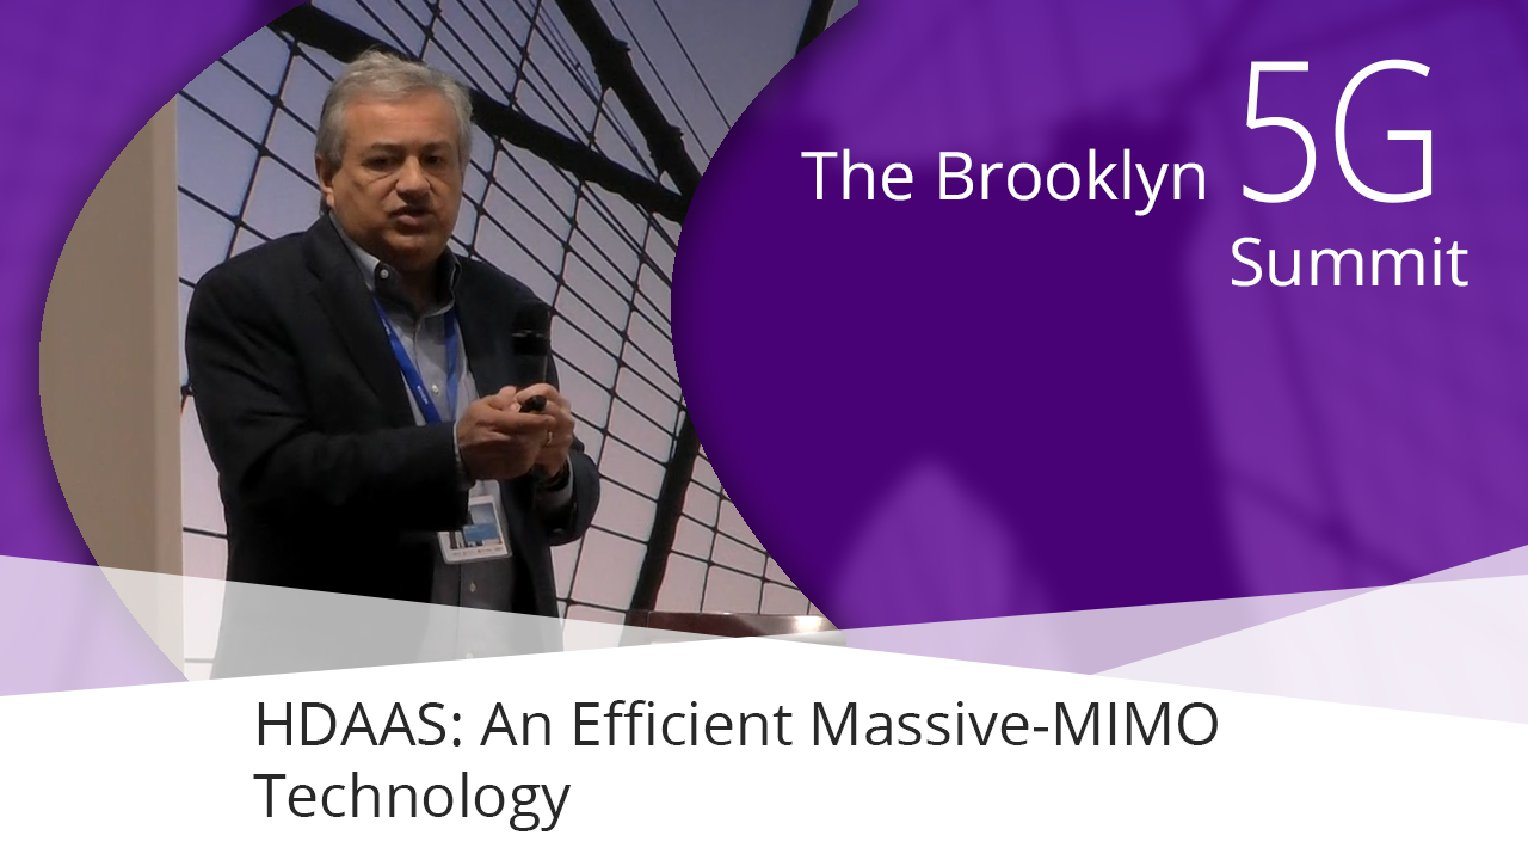 HDAAS: An Efficient Massive-MIMO Technology - Mihai Banu: Brooklyn 5G Summit 2017